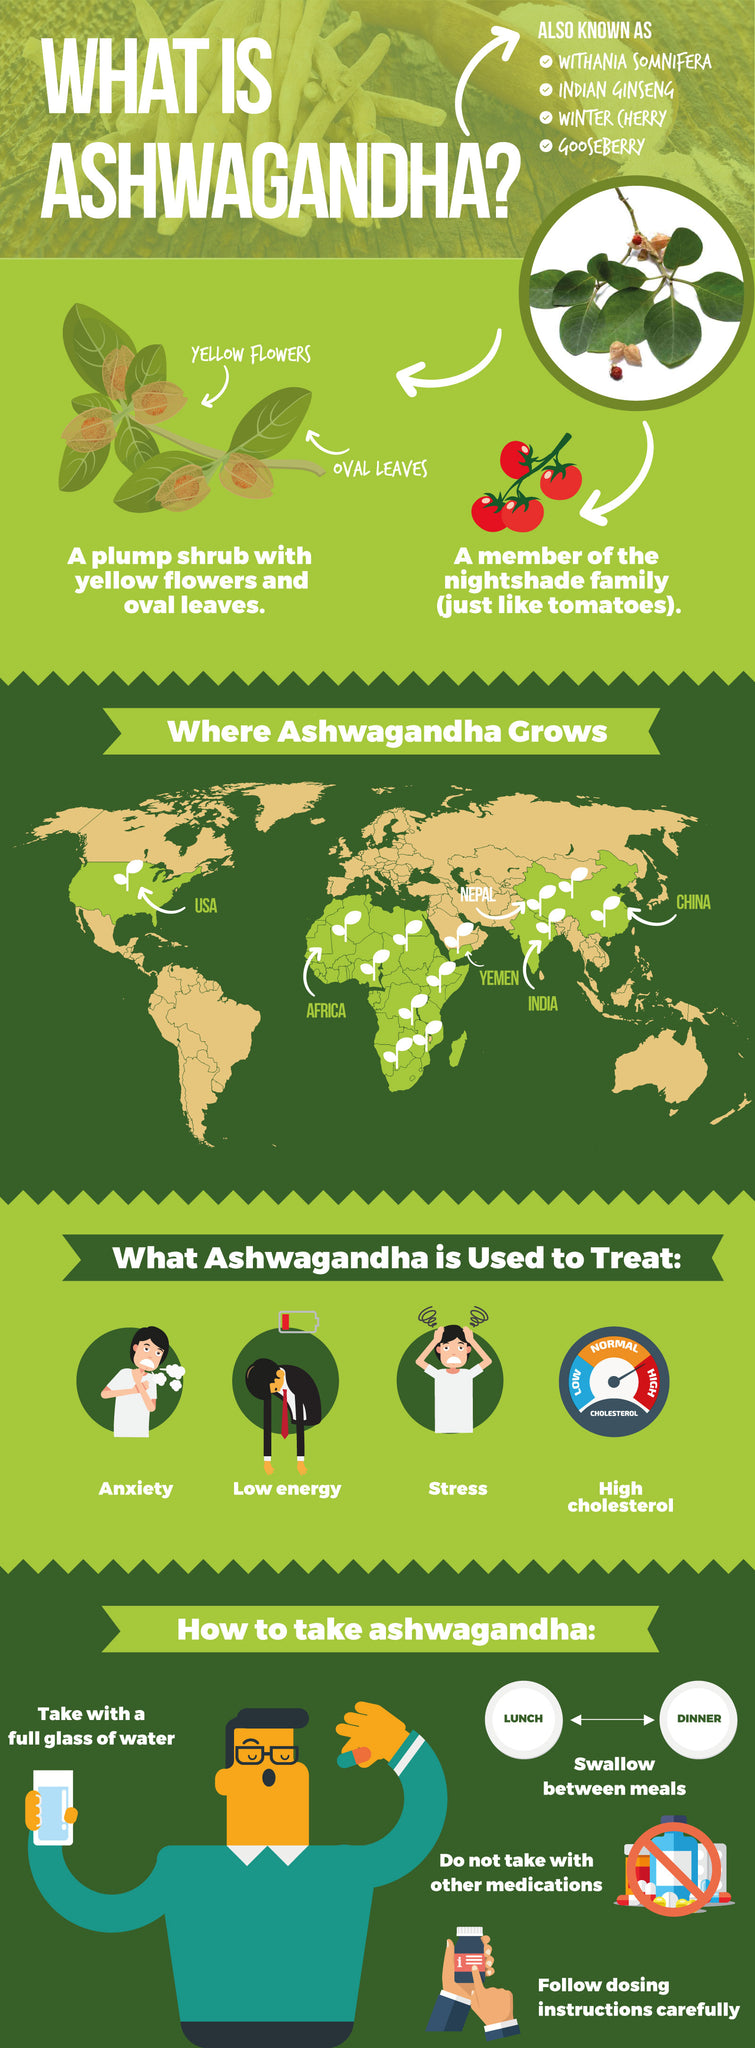 Ashwagandha benefits everyone: Your guide to this amazing